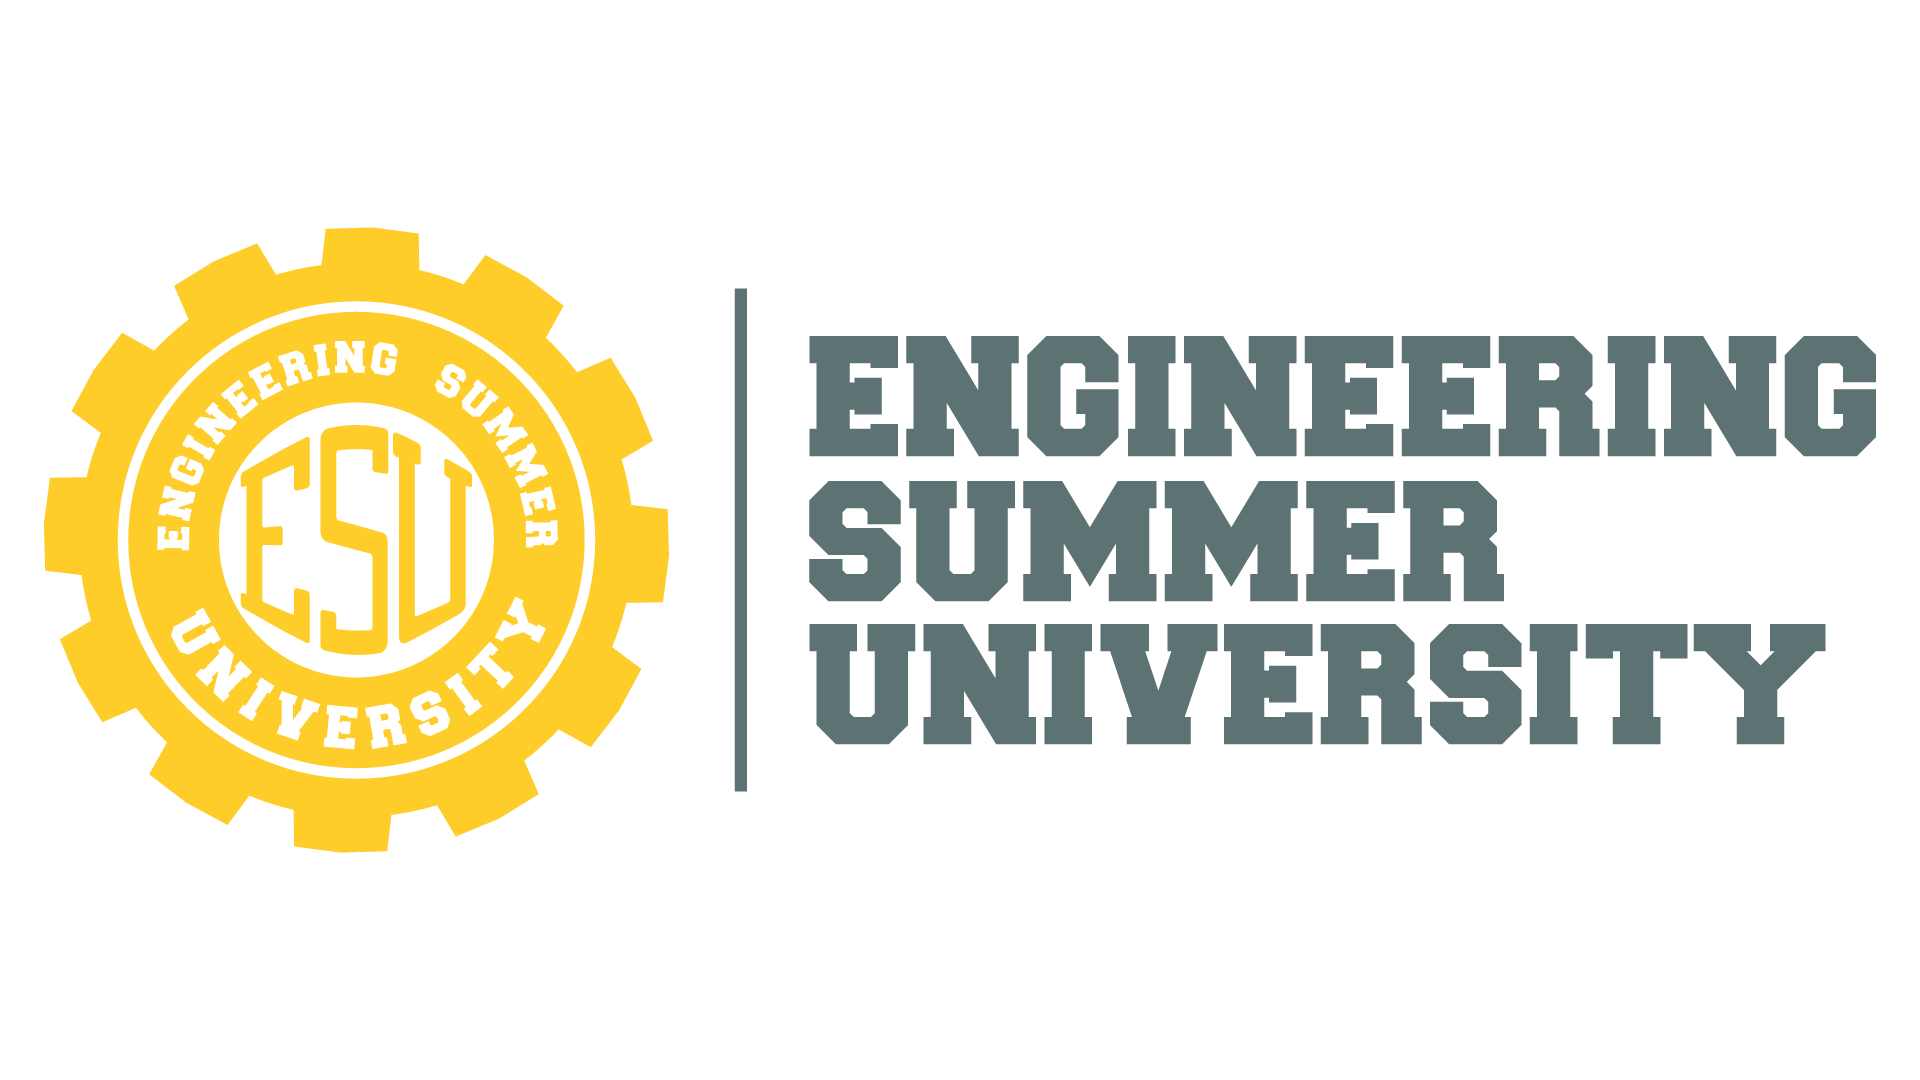 Engineering Summer University